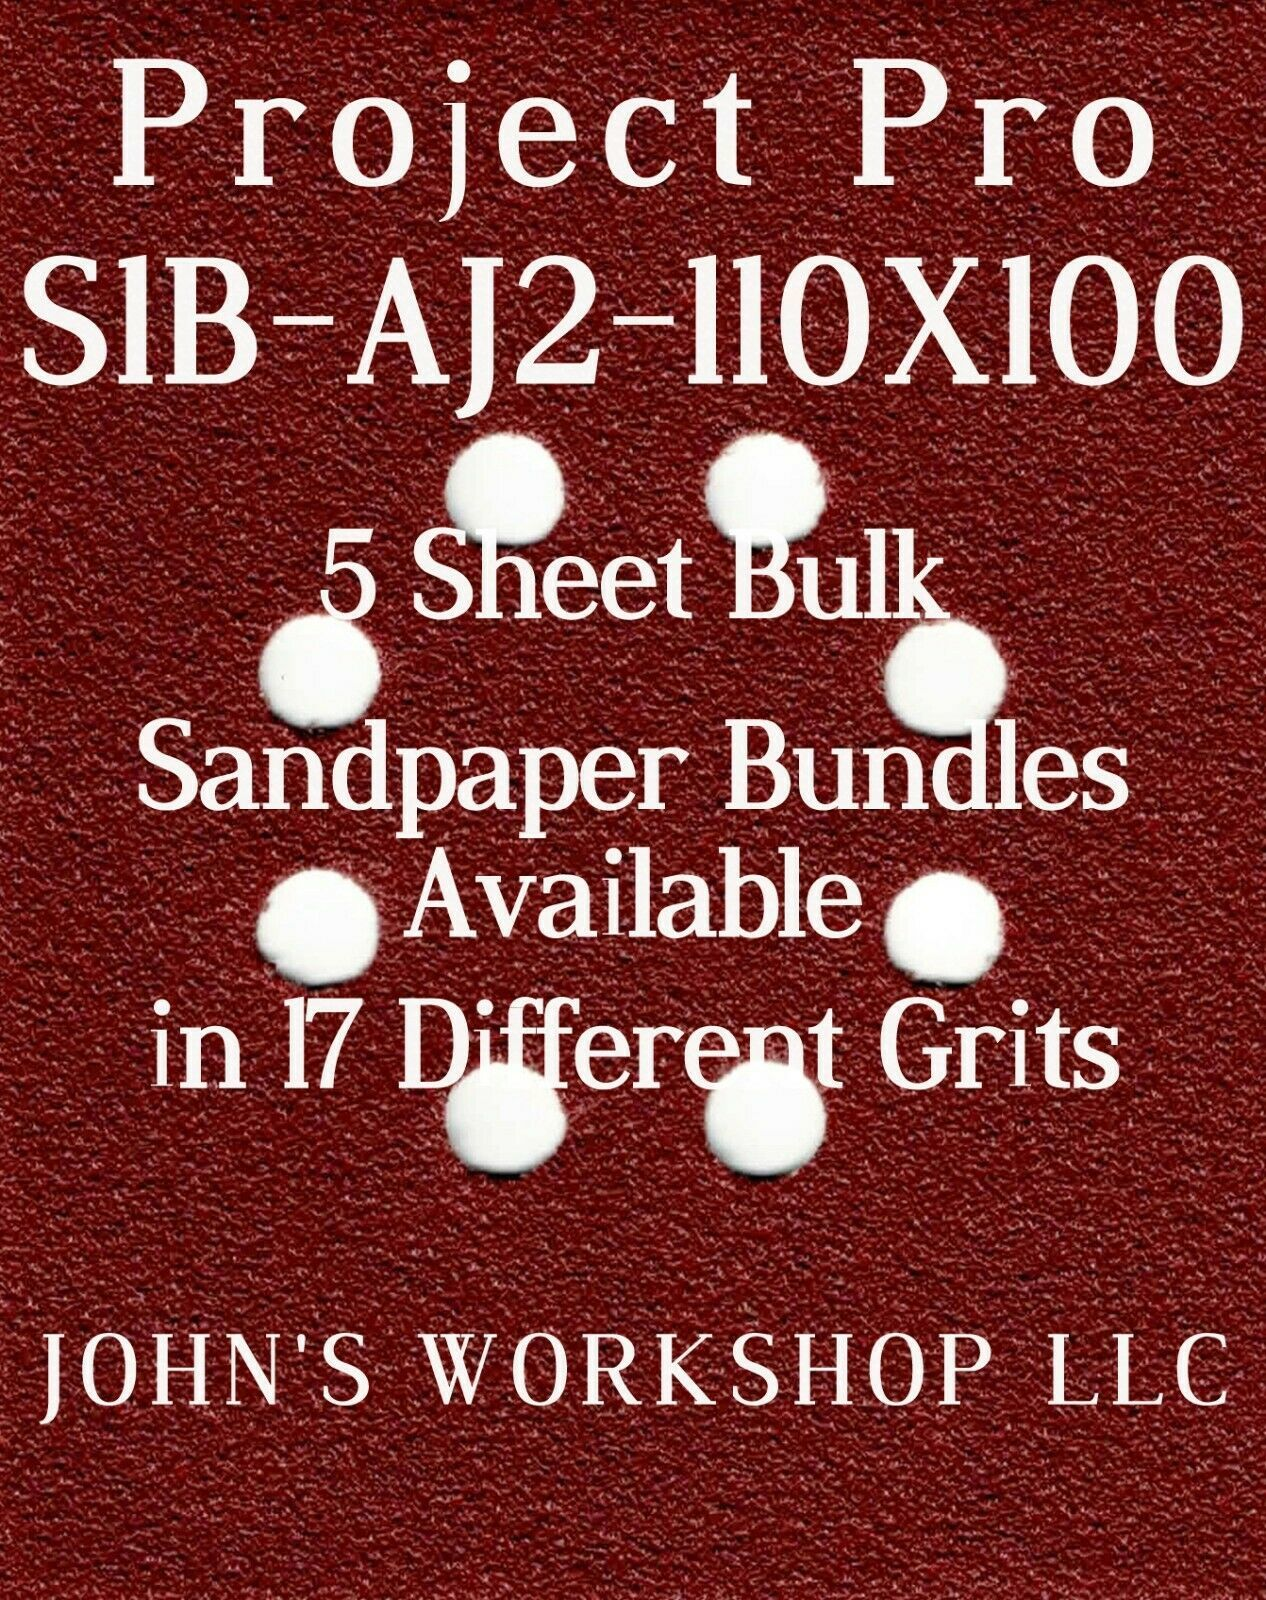 Primary image for Project Pro S1B-AJ2-110X100 - 1/4 Sheet - 17 Grit - No-Slip - 5 Sandpaper Bulk